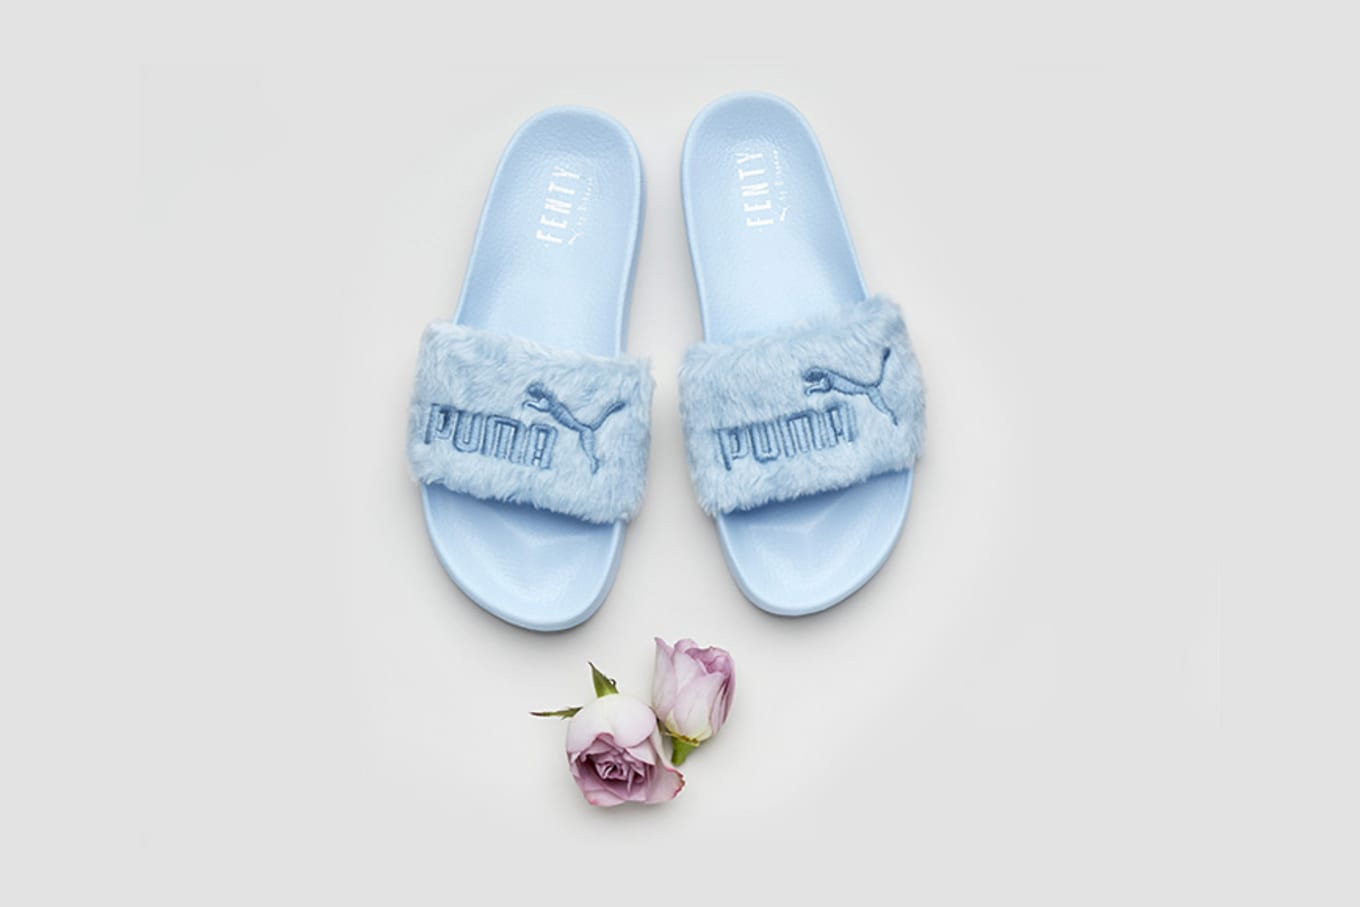 346cac2c6e0a Puma is Releasing More of Rihanna s Fenty Slides. Three new colorways of  the Fenty Fur Slide for the ladies.